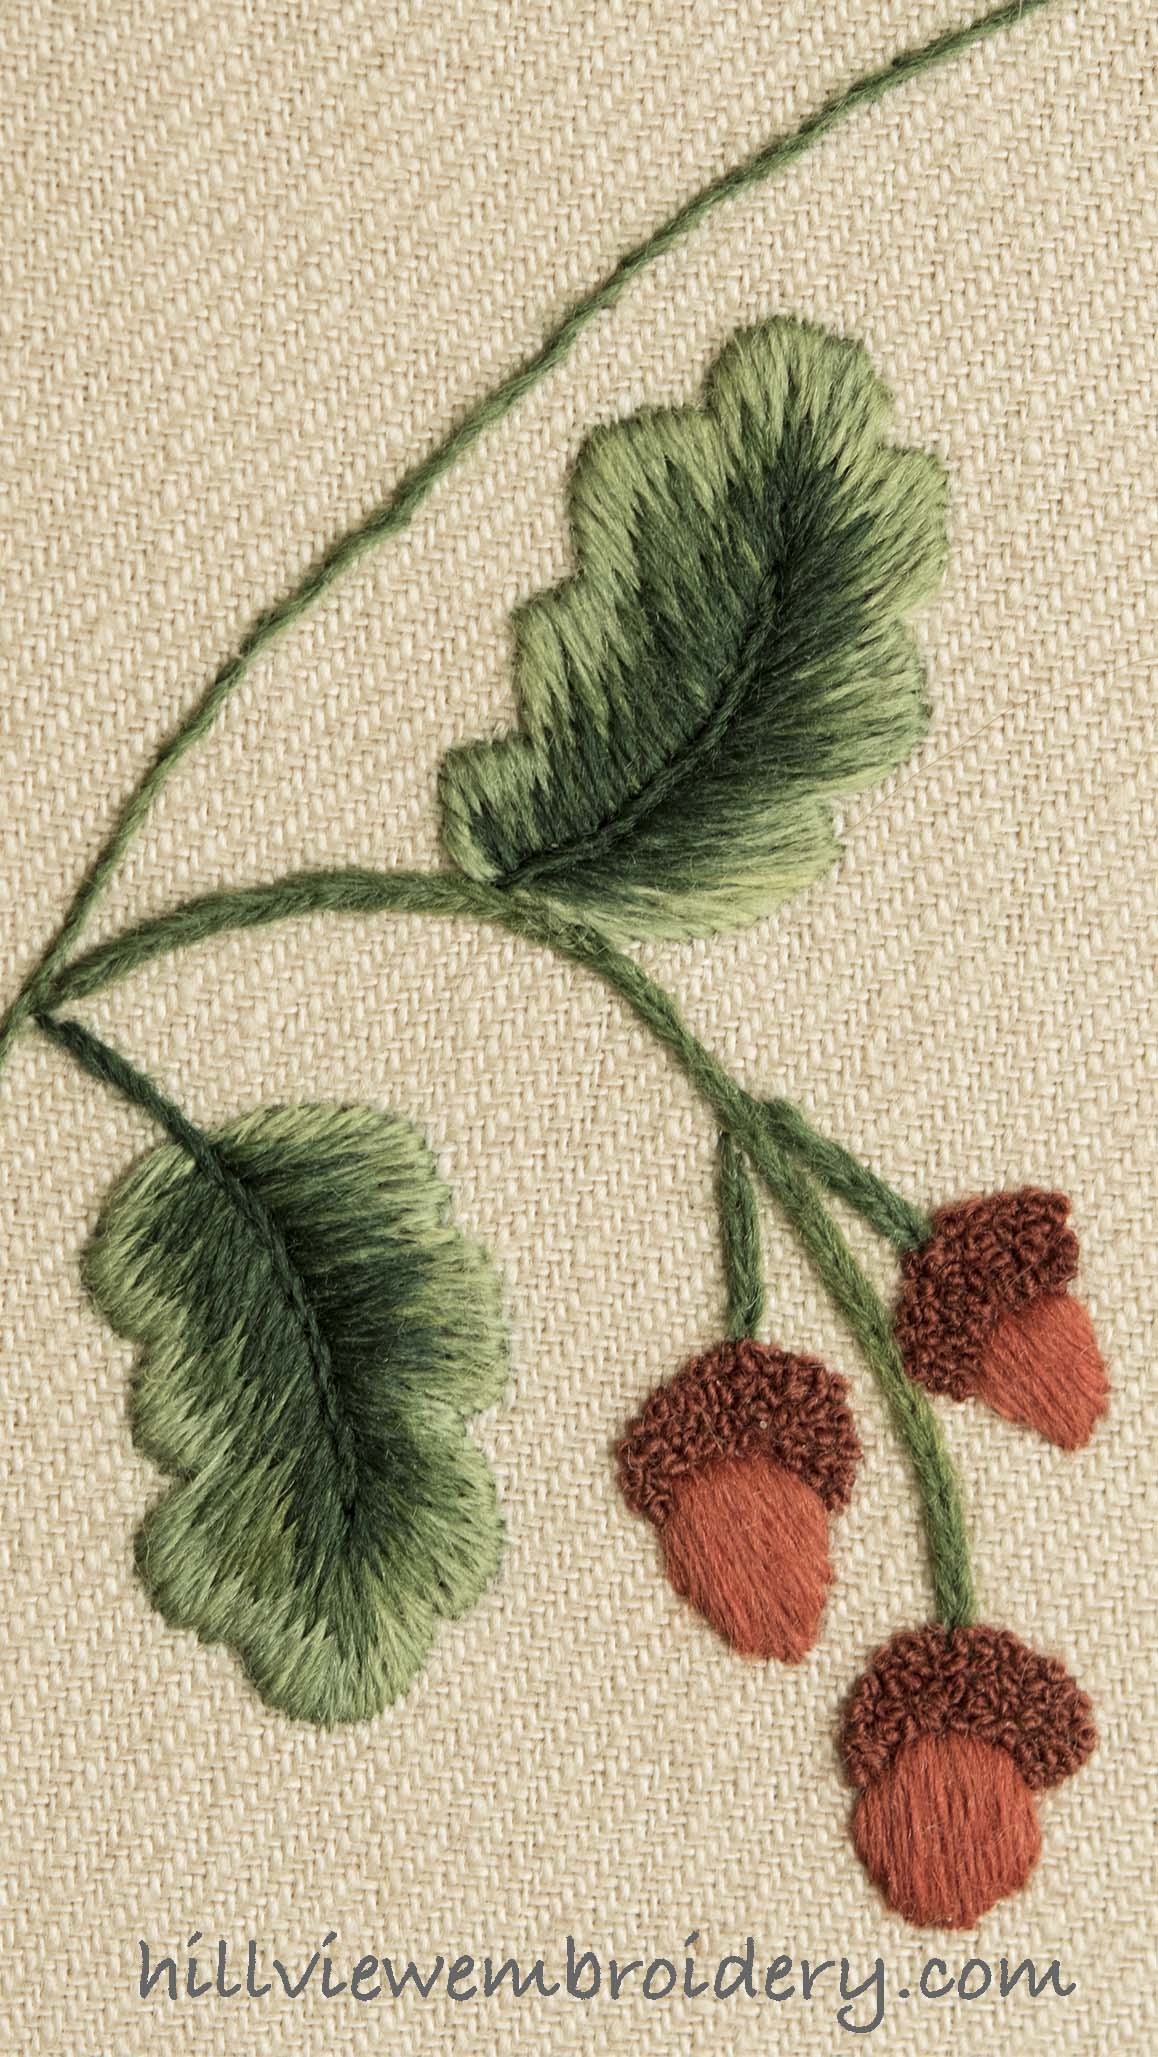 Oak leaves and acorns worked on a modern interpretation of crewelwork